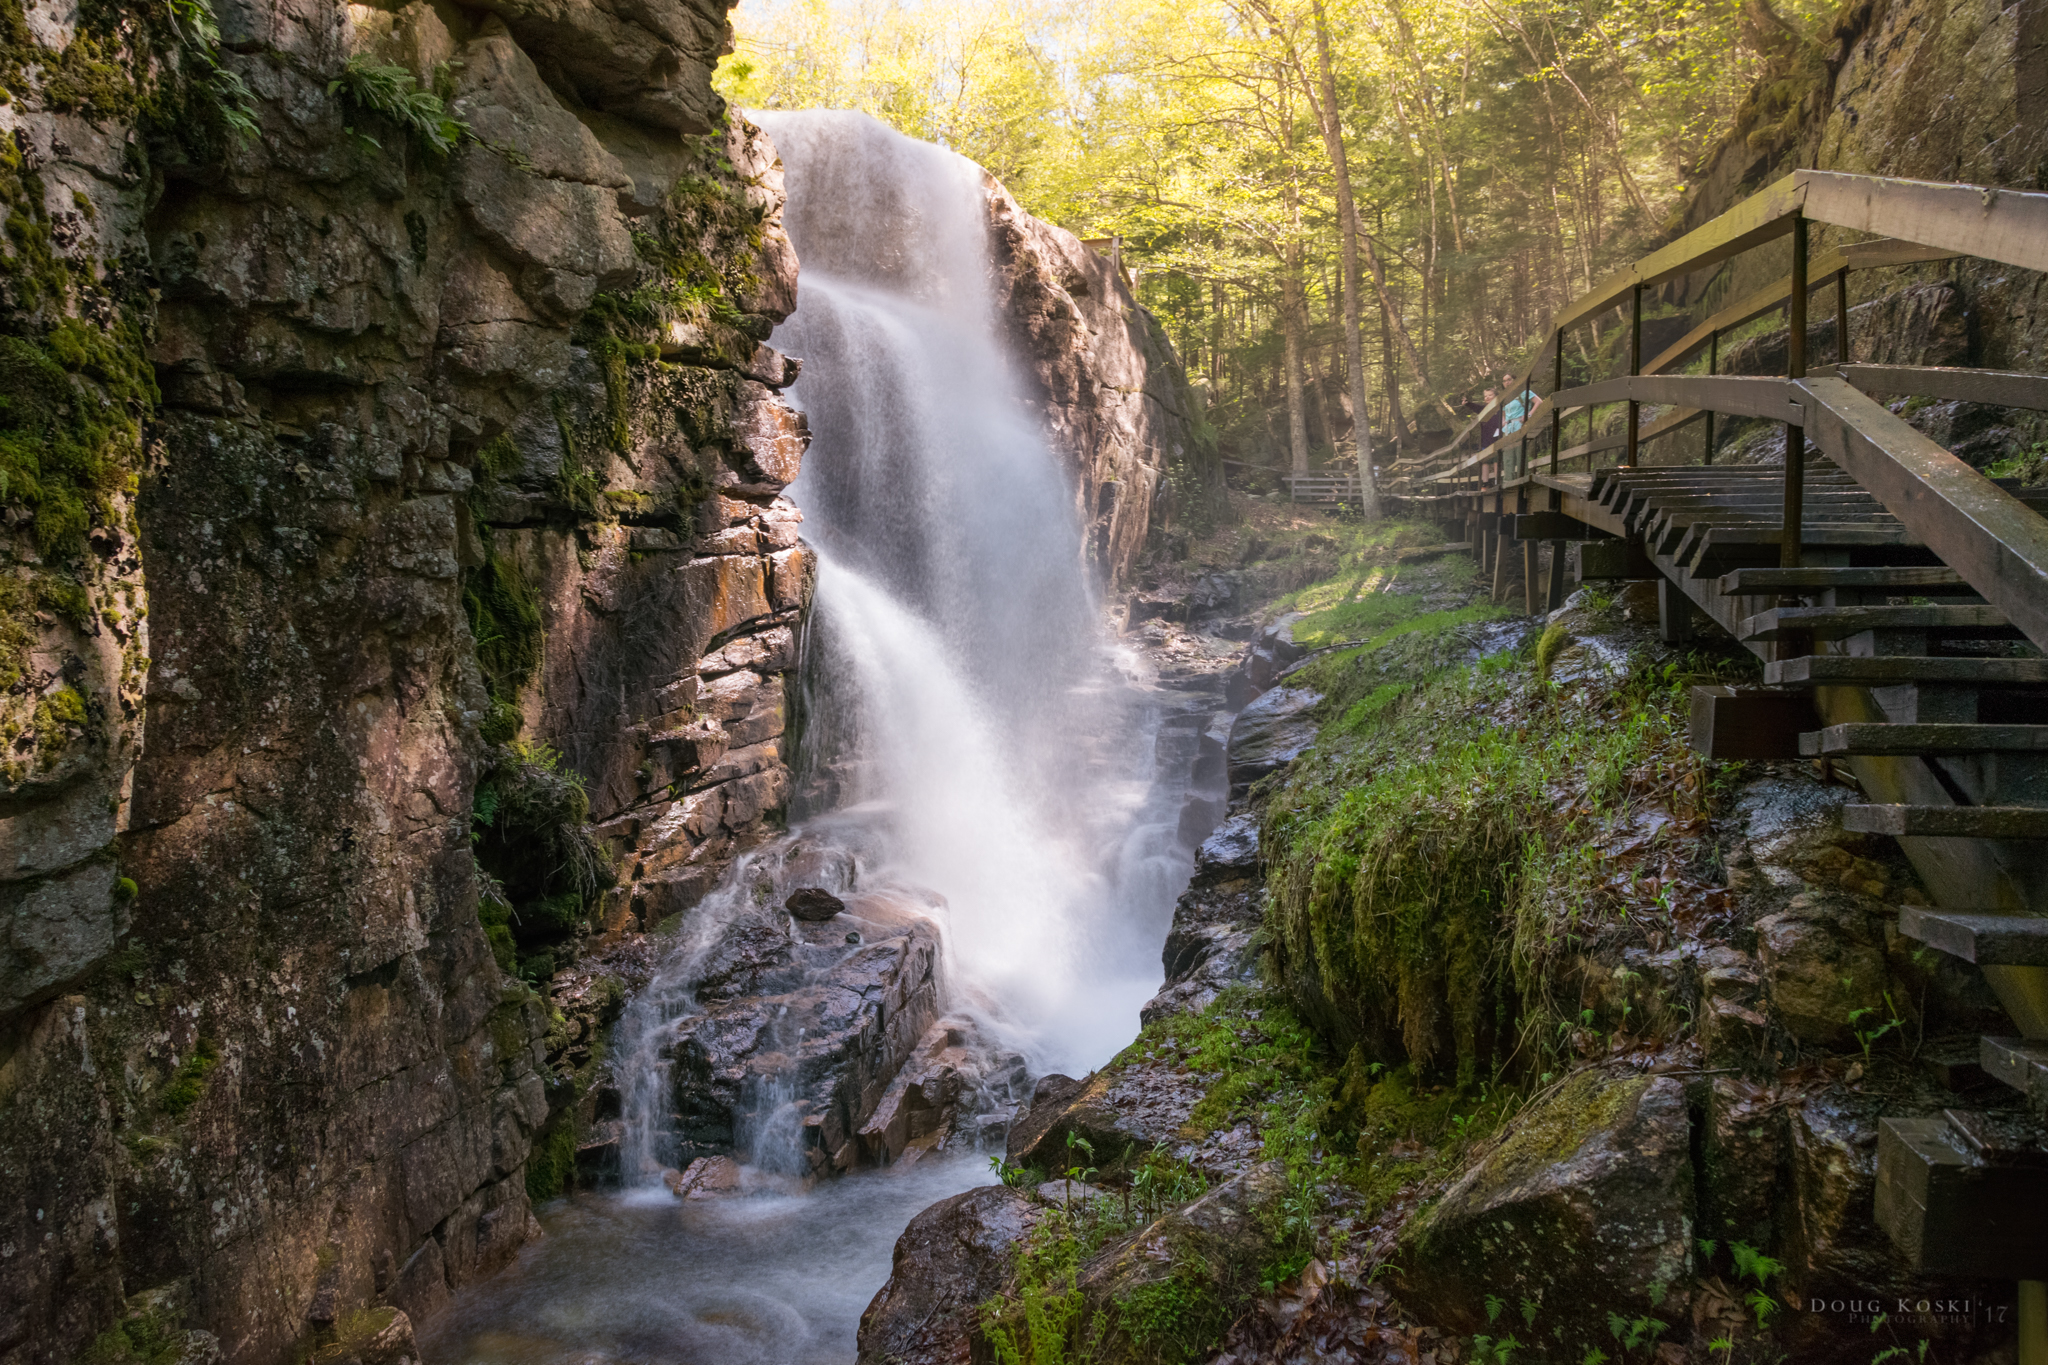 Franconia Notch - The Adventure with Andy